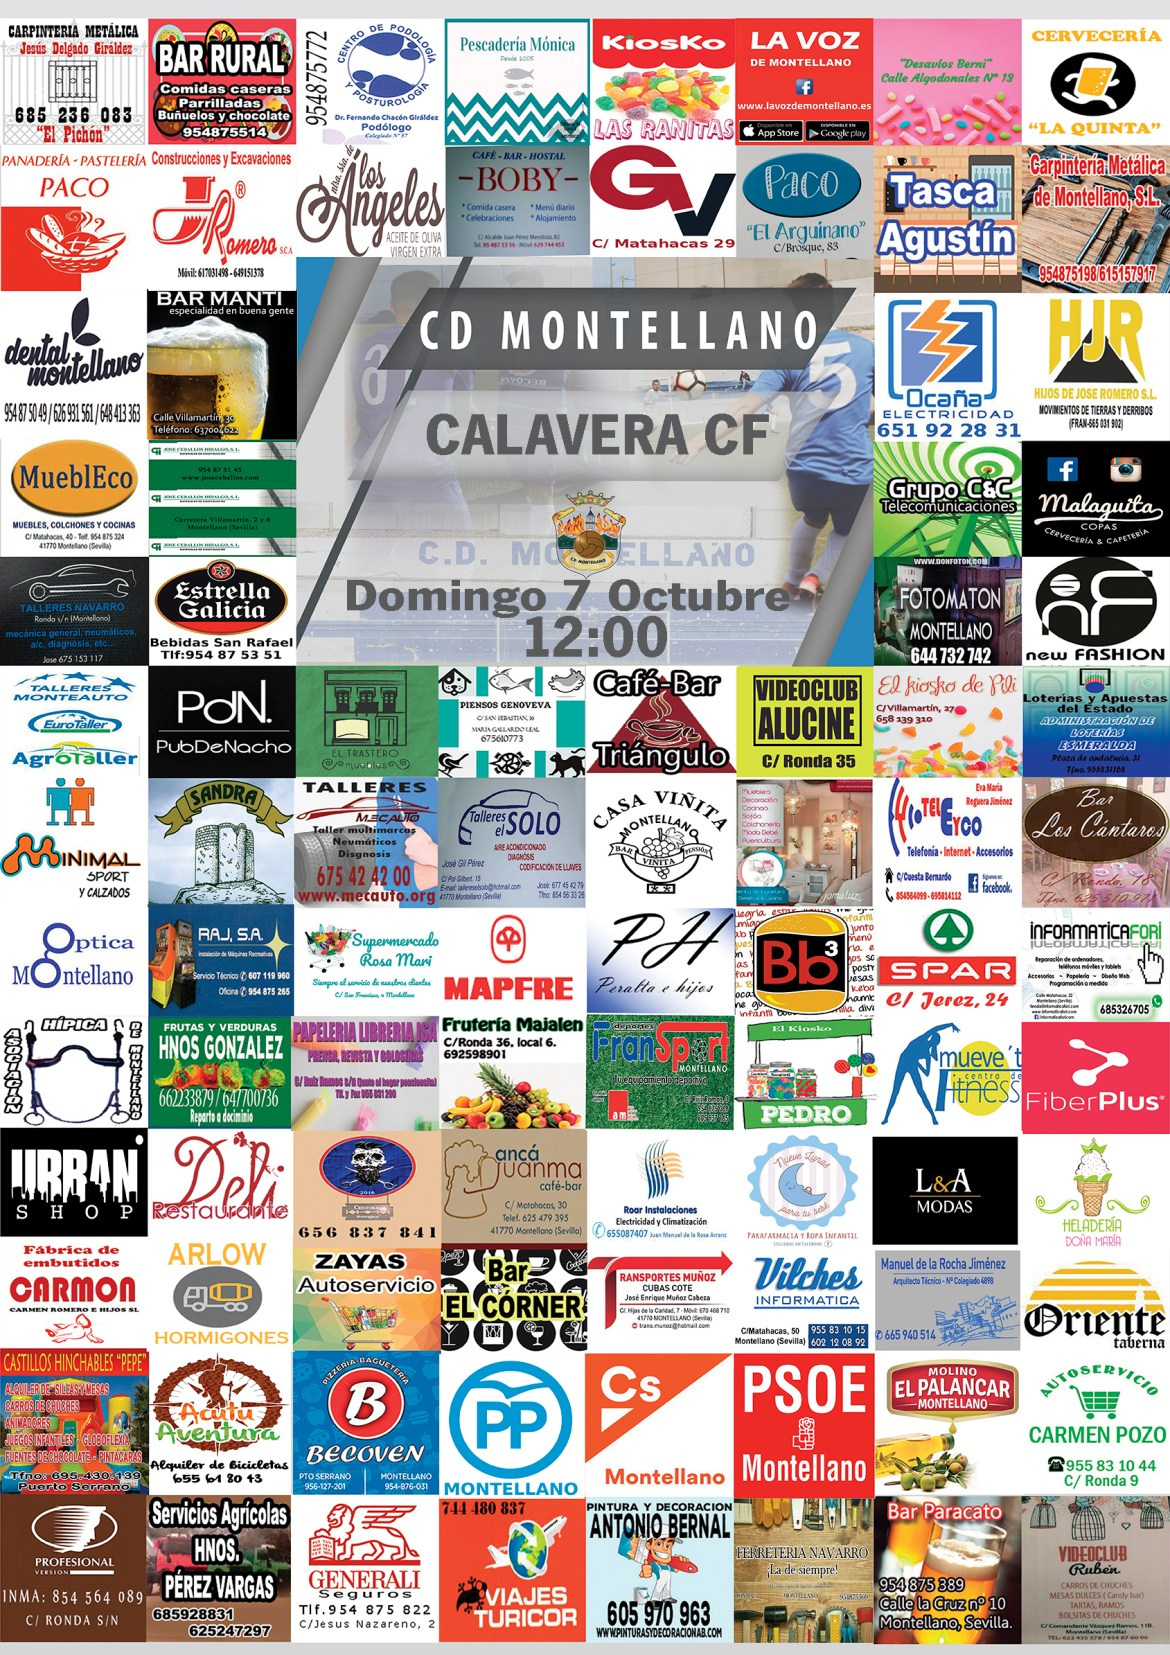 cd montellano vs calavera cf